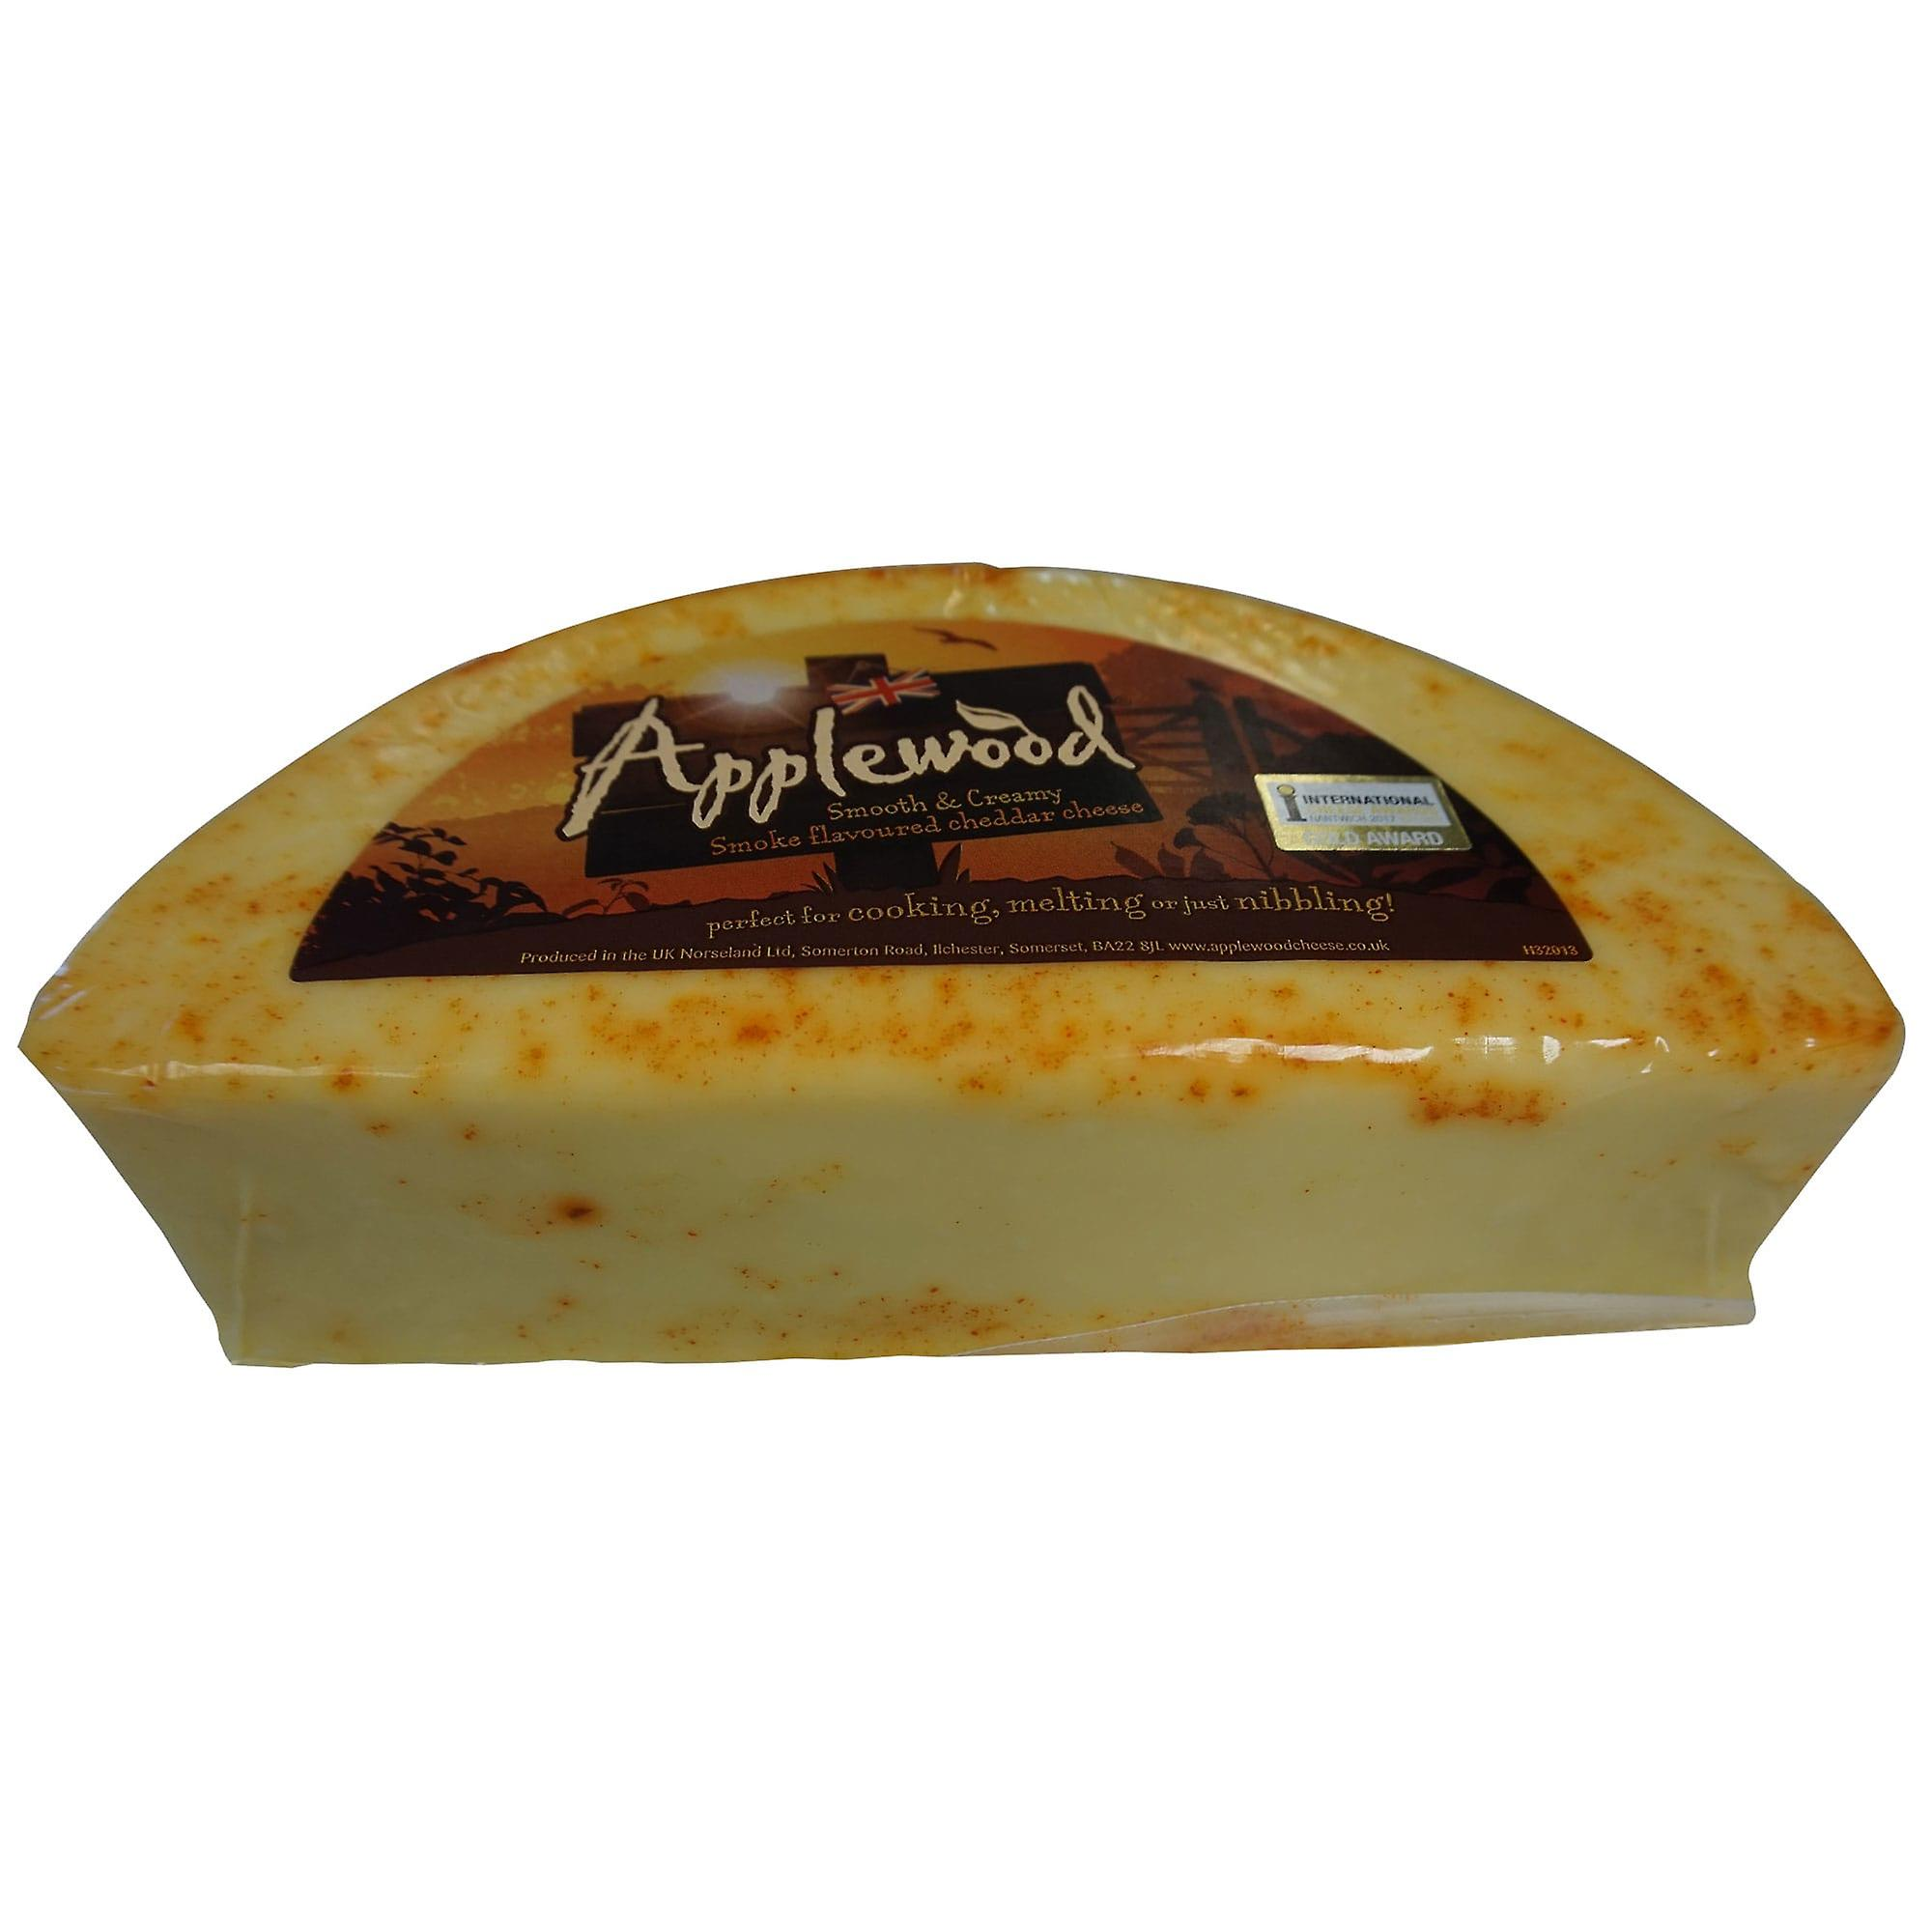 Applewood Smoke Flavoured Cheddar Cheese